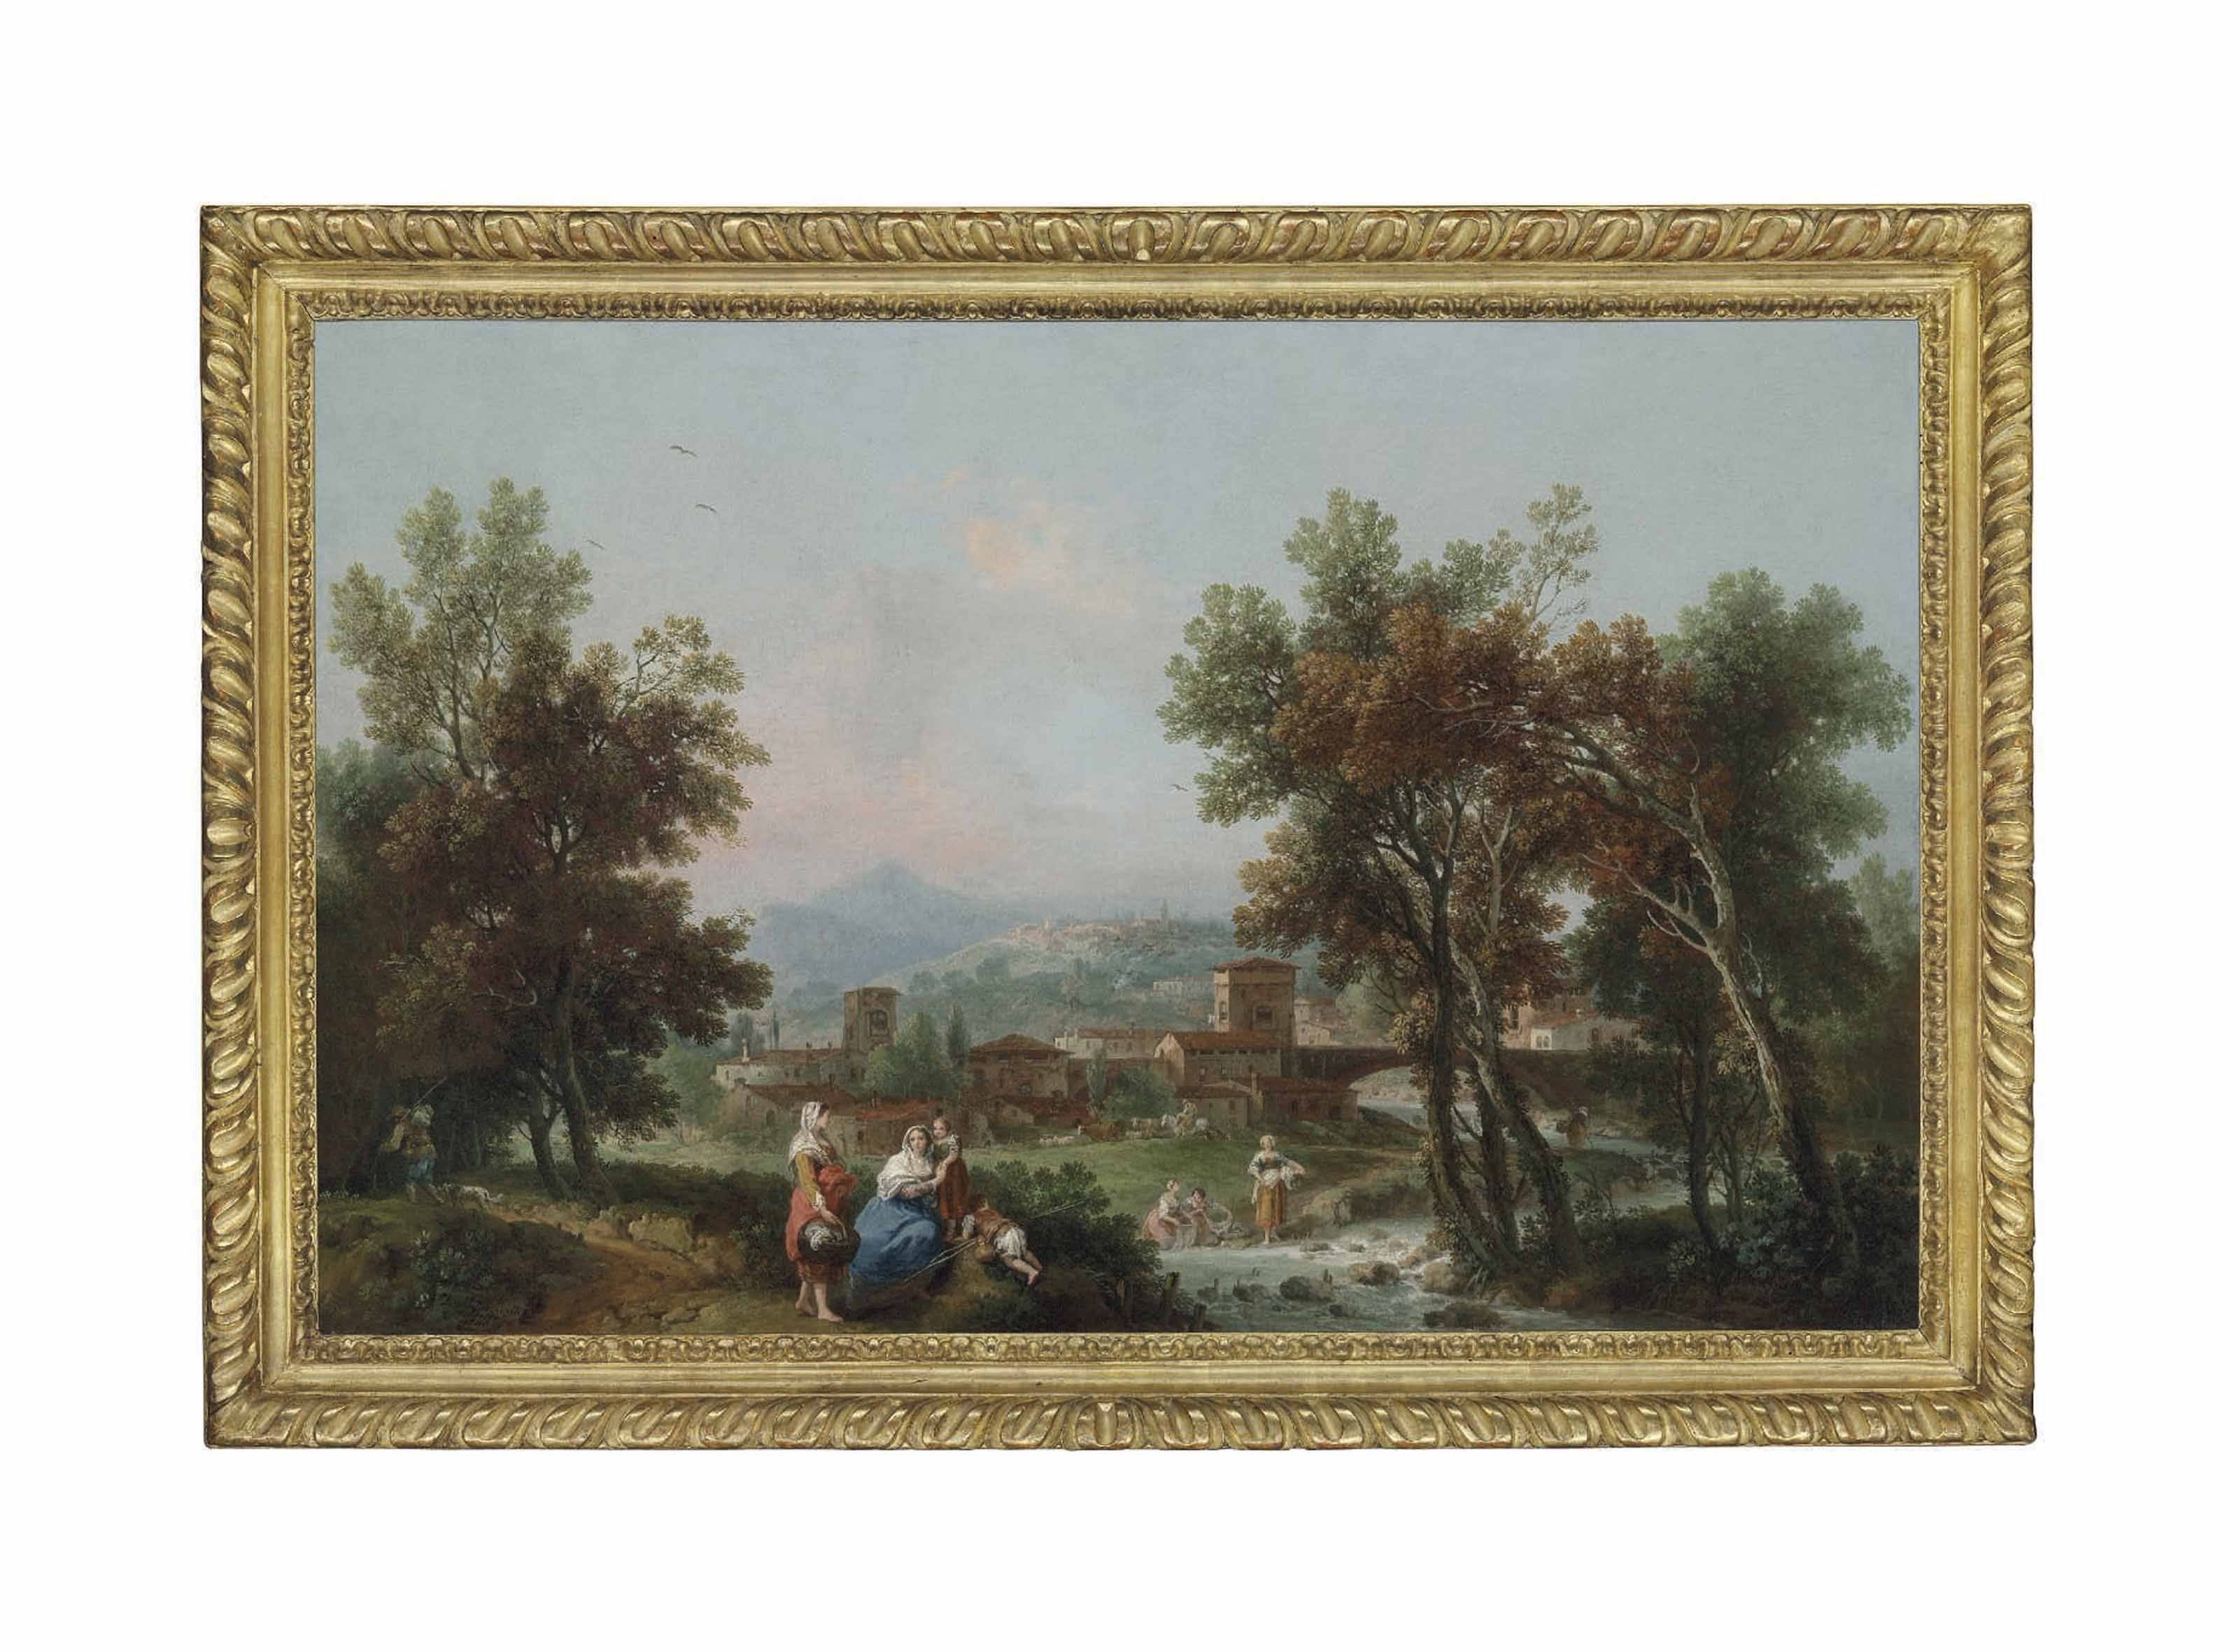 A wooded landscape with washerwomen by a river, a pedlar on a path nearby, a town and hills beyond